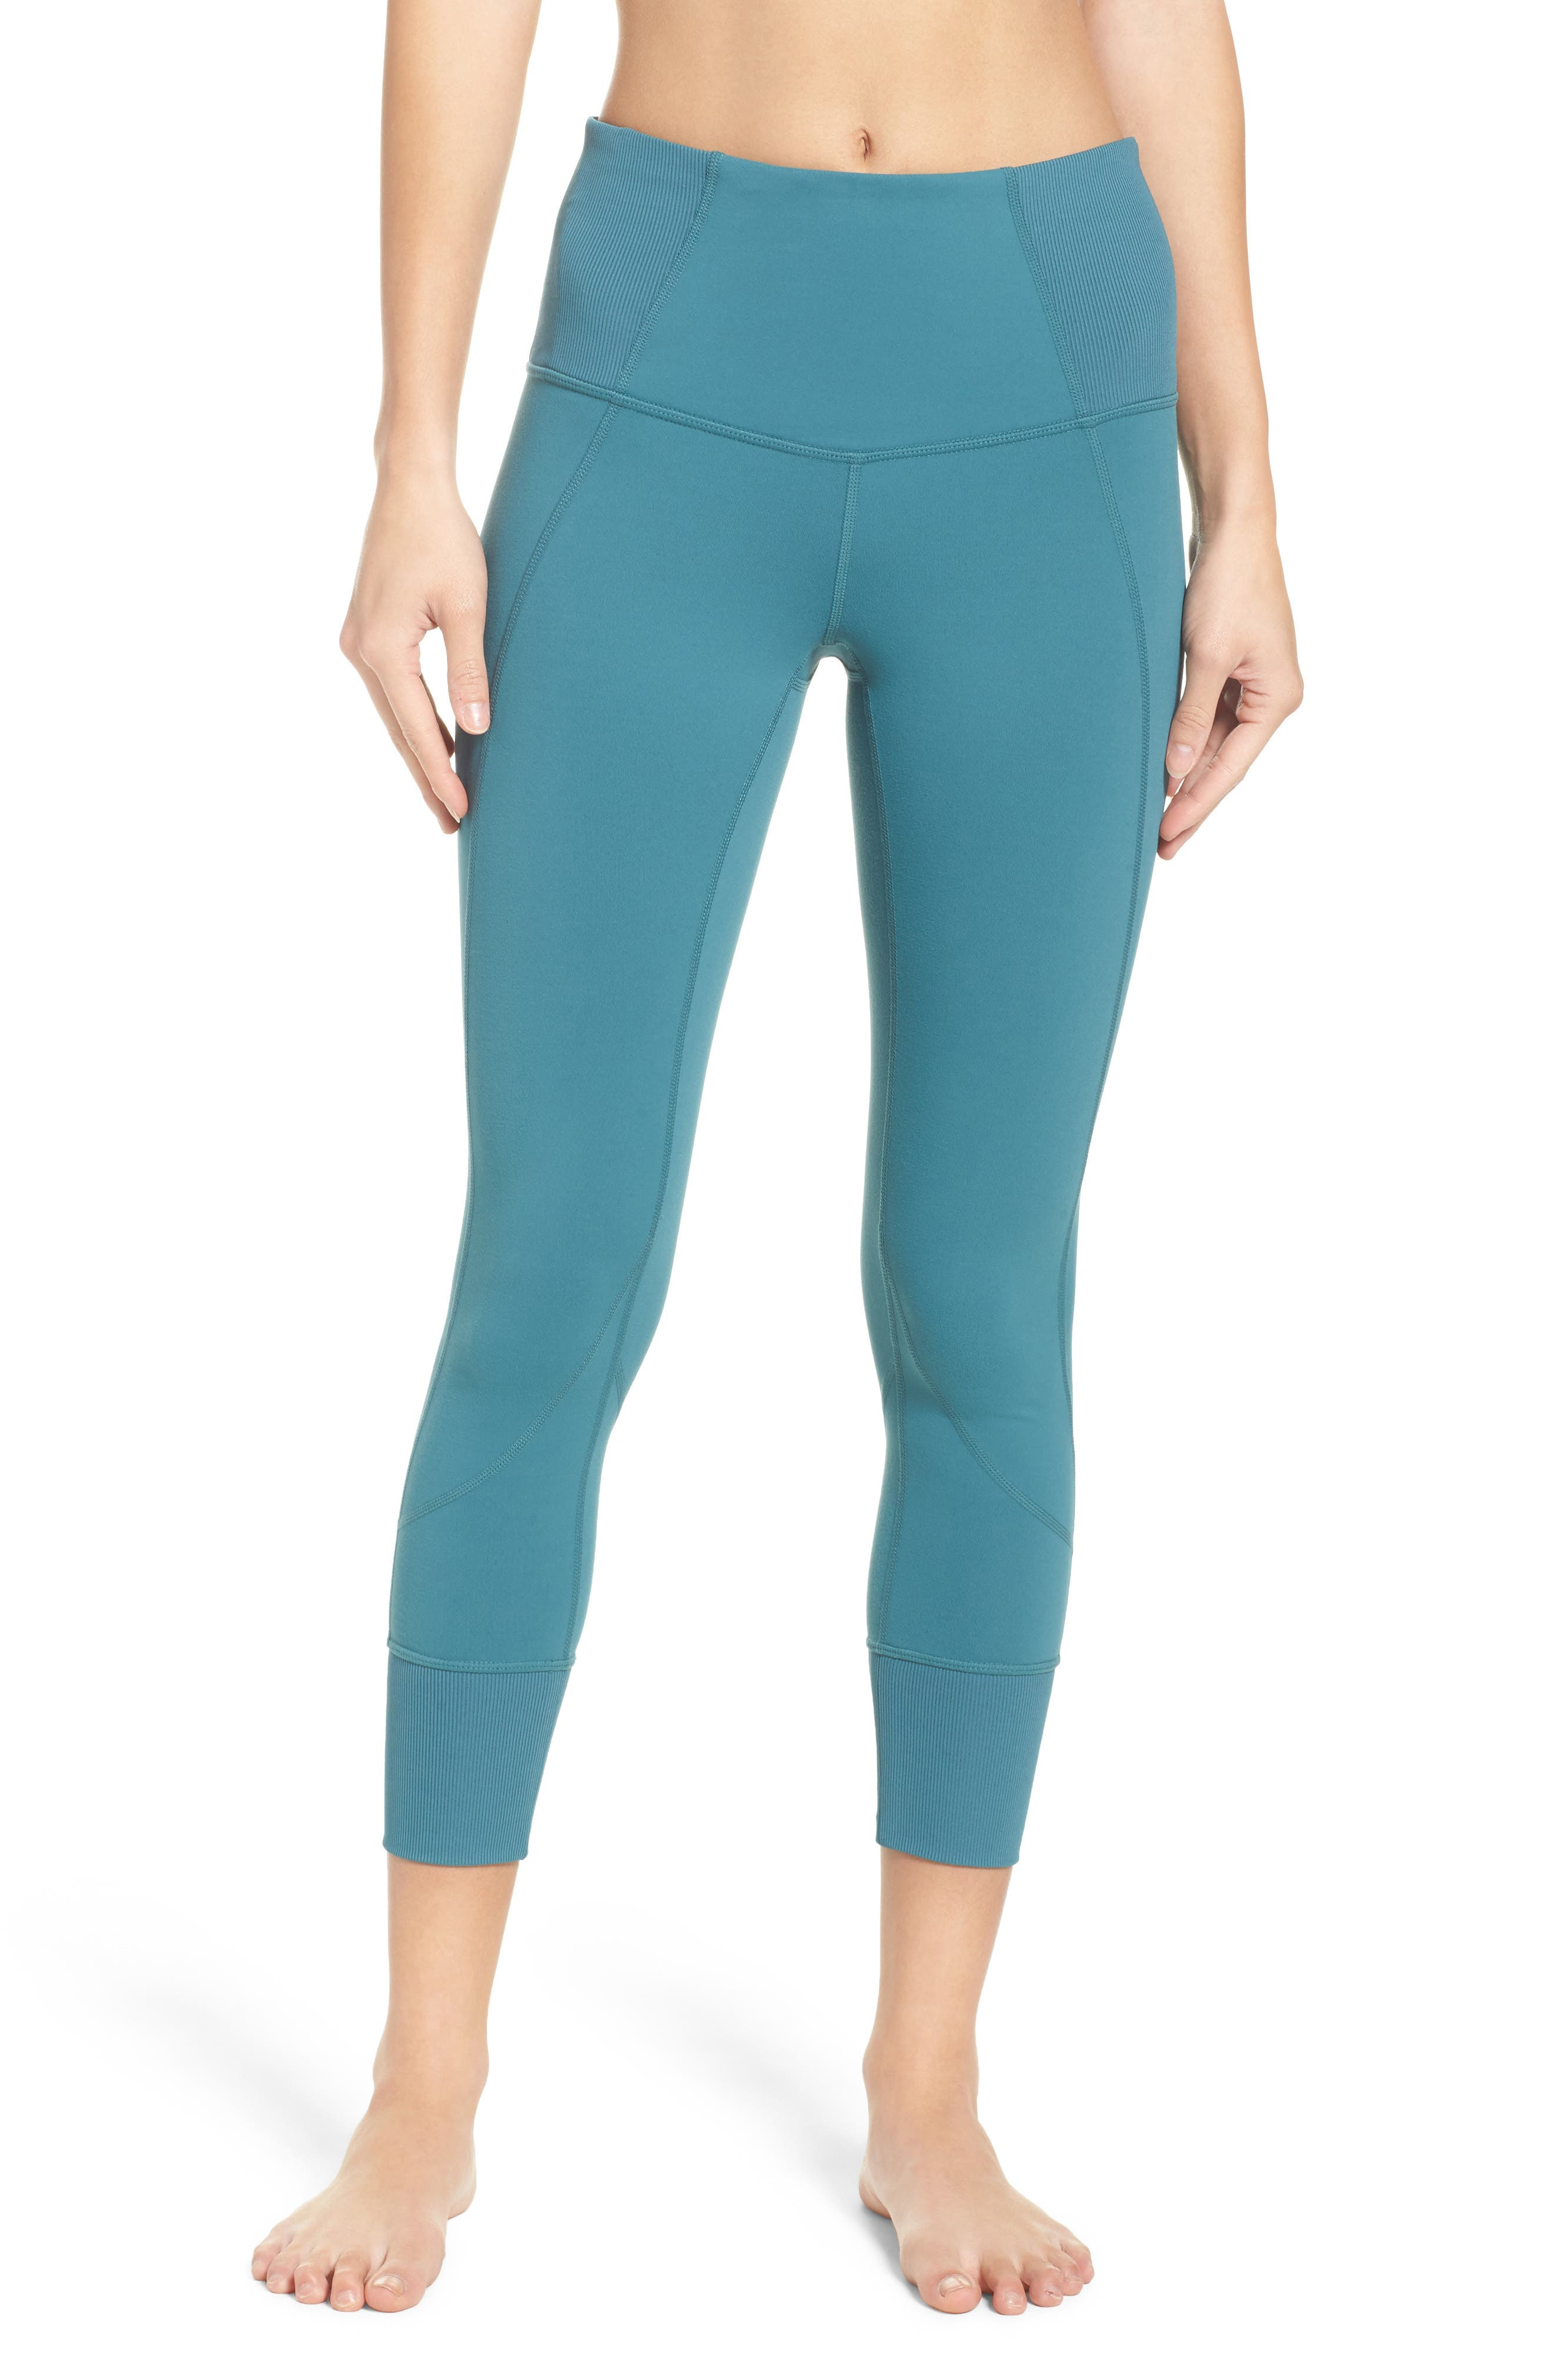 Zella Moonlight High Waist Midi Leggings